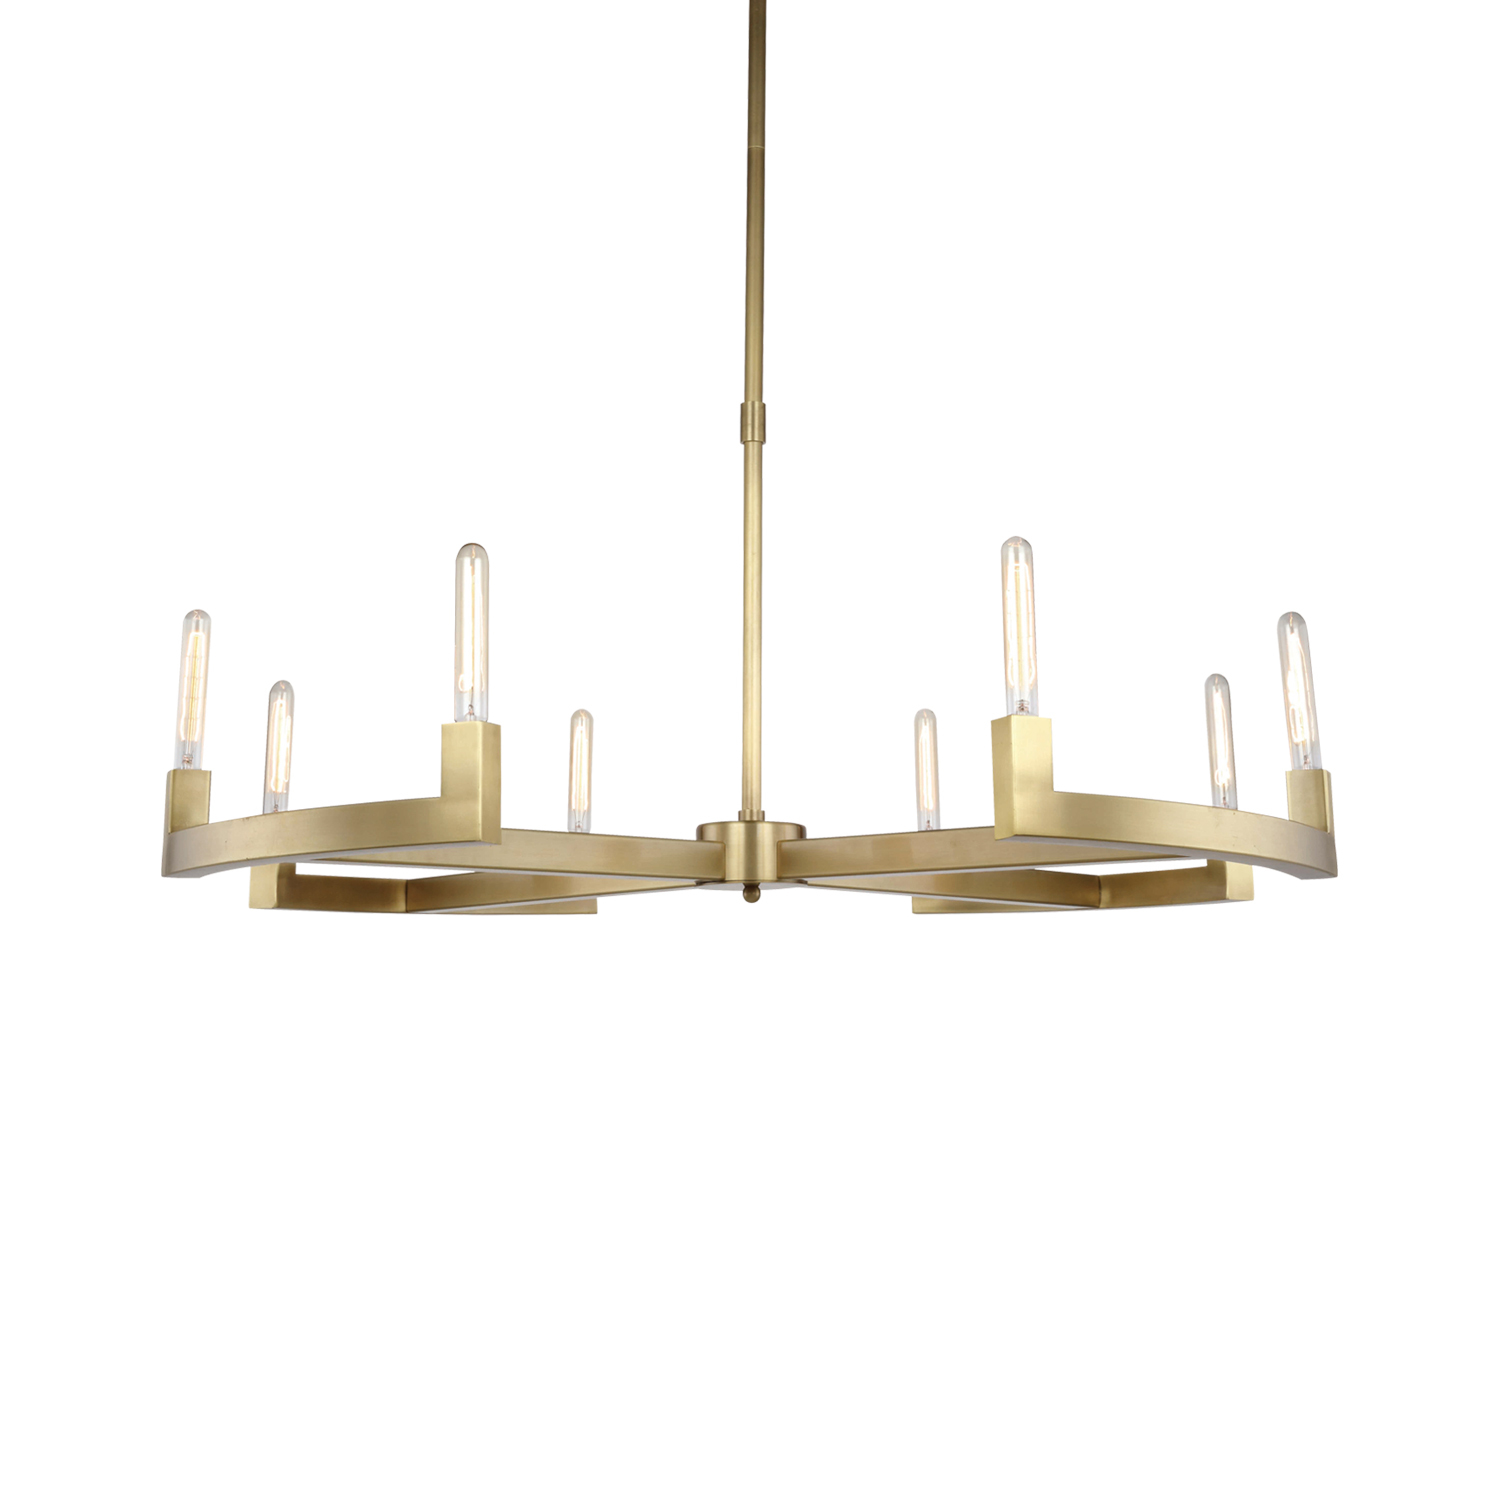 Restoration revolution cannele 8 light 48 round chandelier 701982 cannele 8 light 48 round chandelier arubaitofo Choice Image